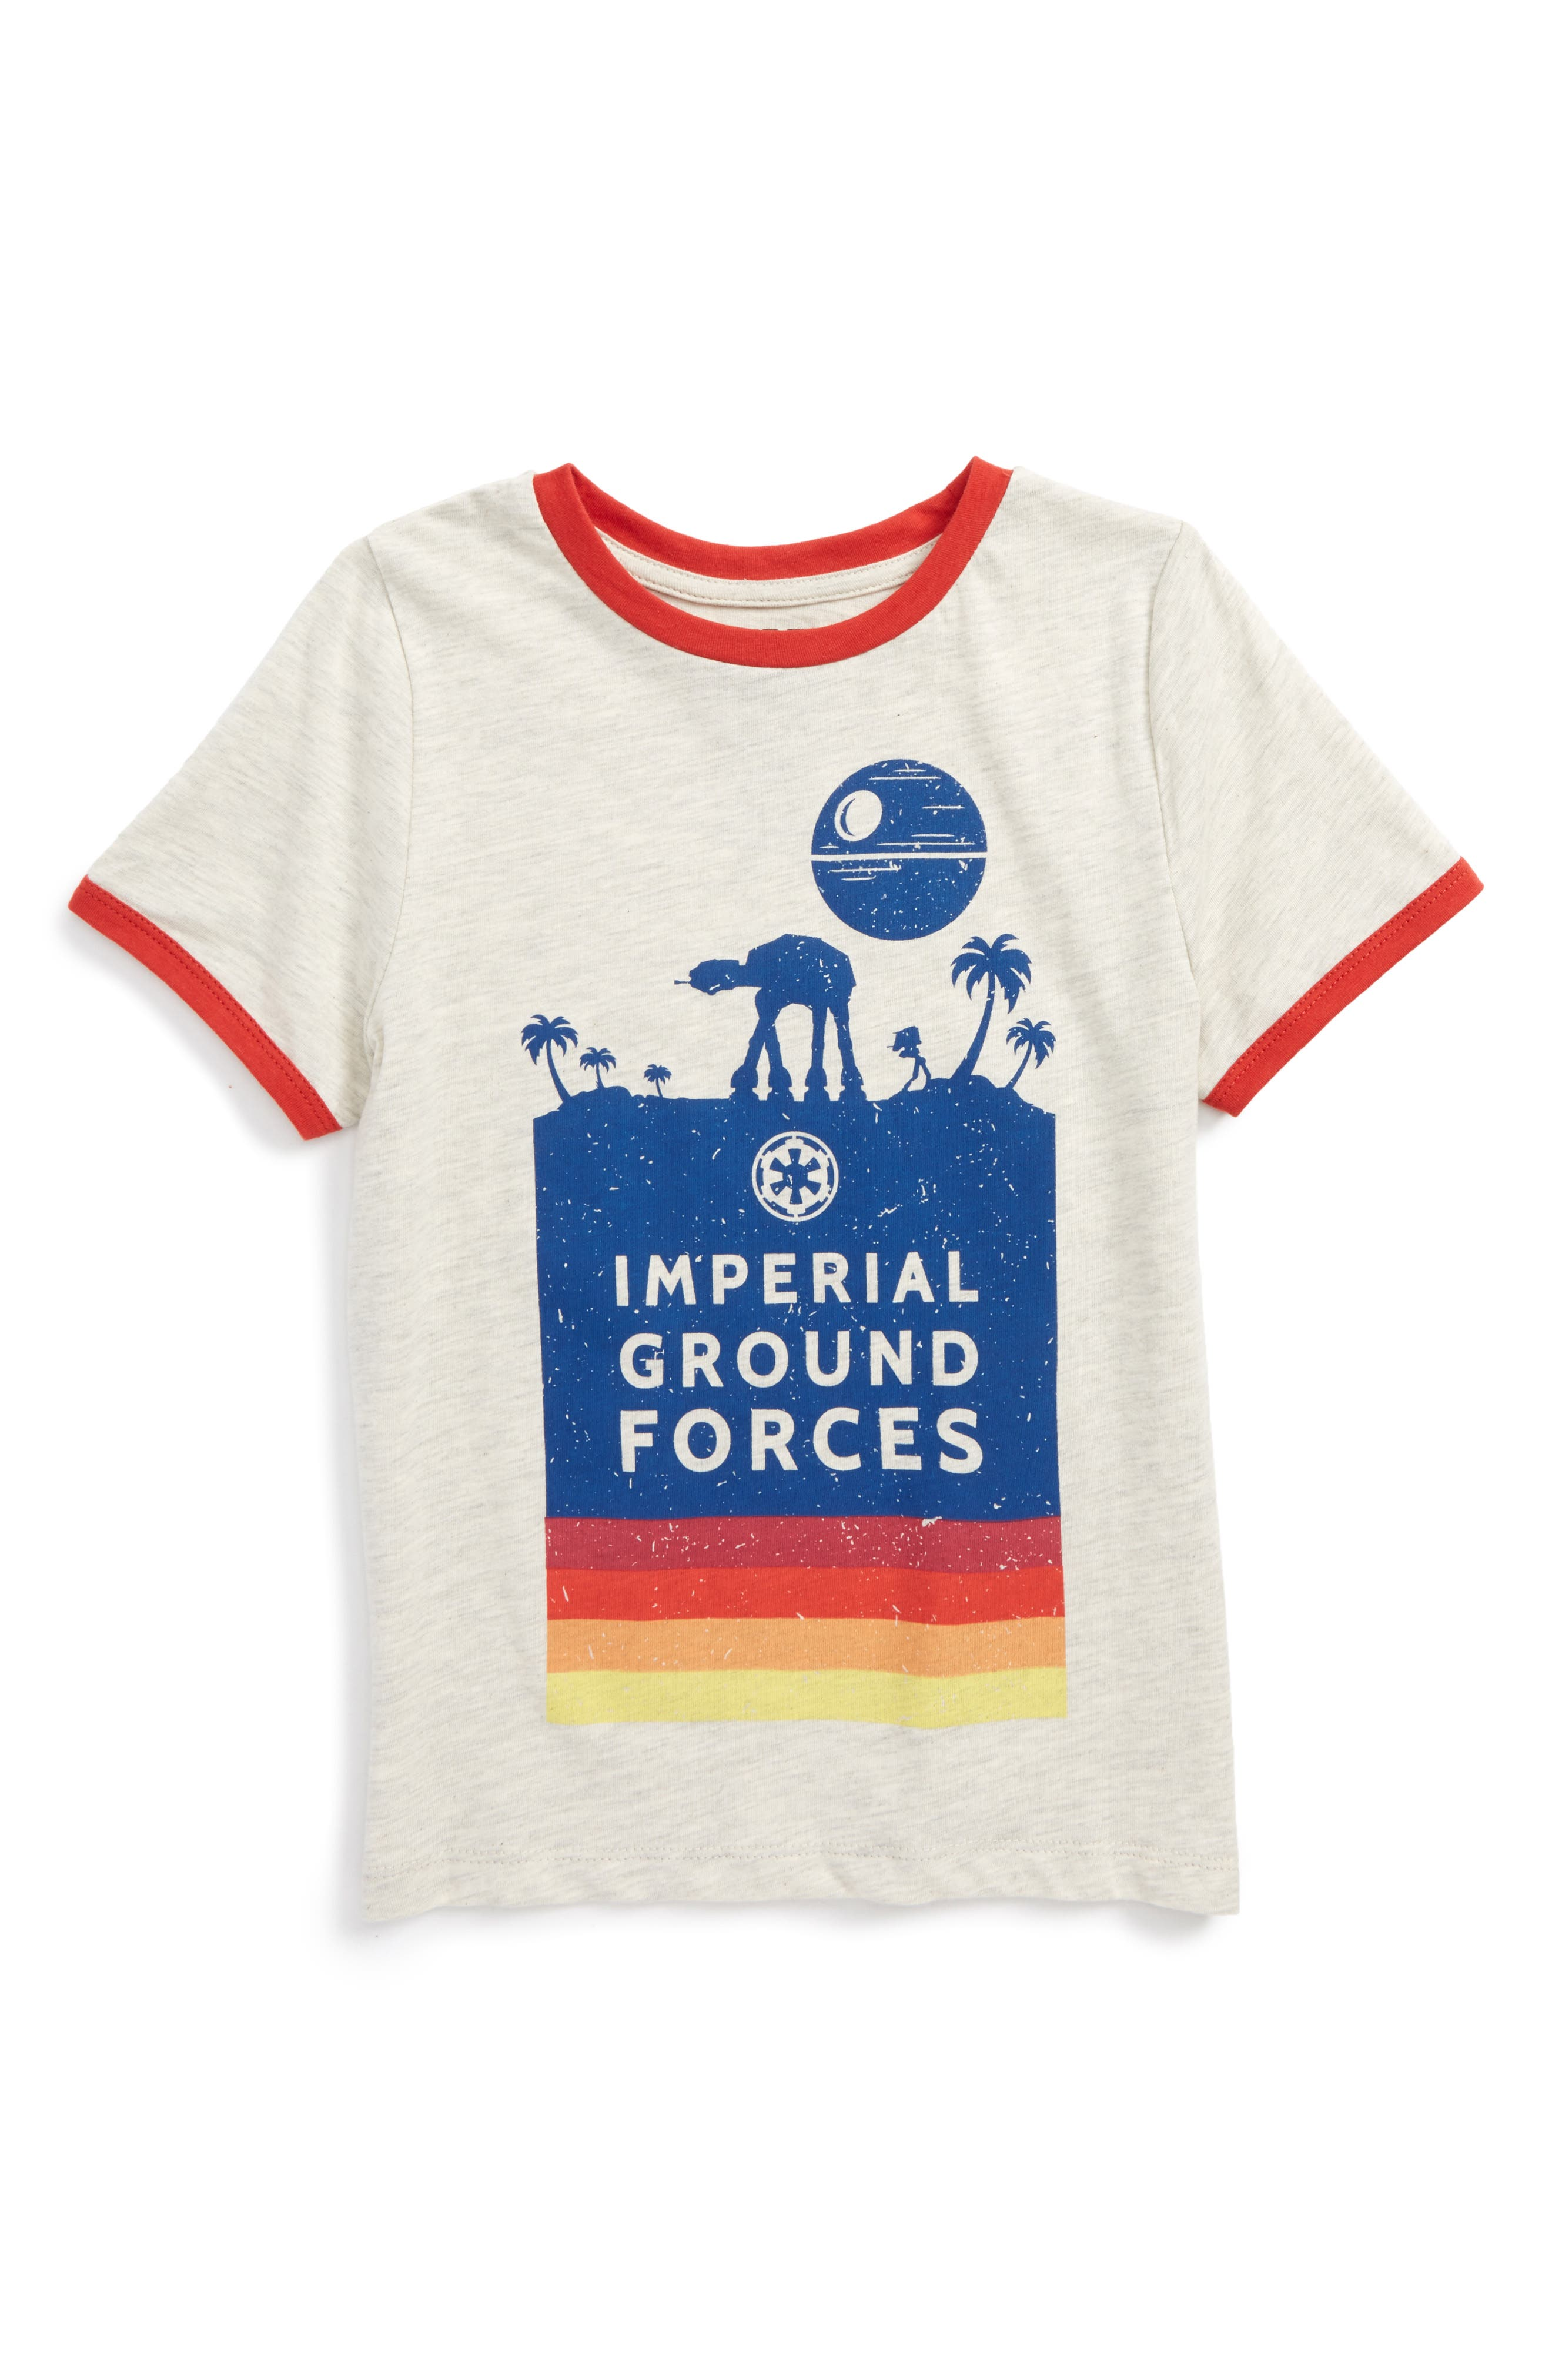 x Star Wars<sup>™</sup> Imperial Ground Forces T-Shirt,                         Main,                         color, 020